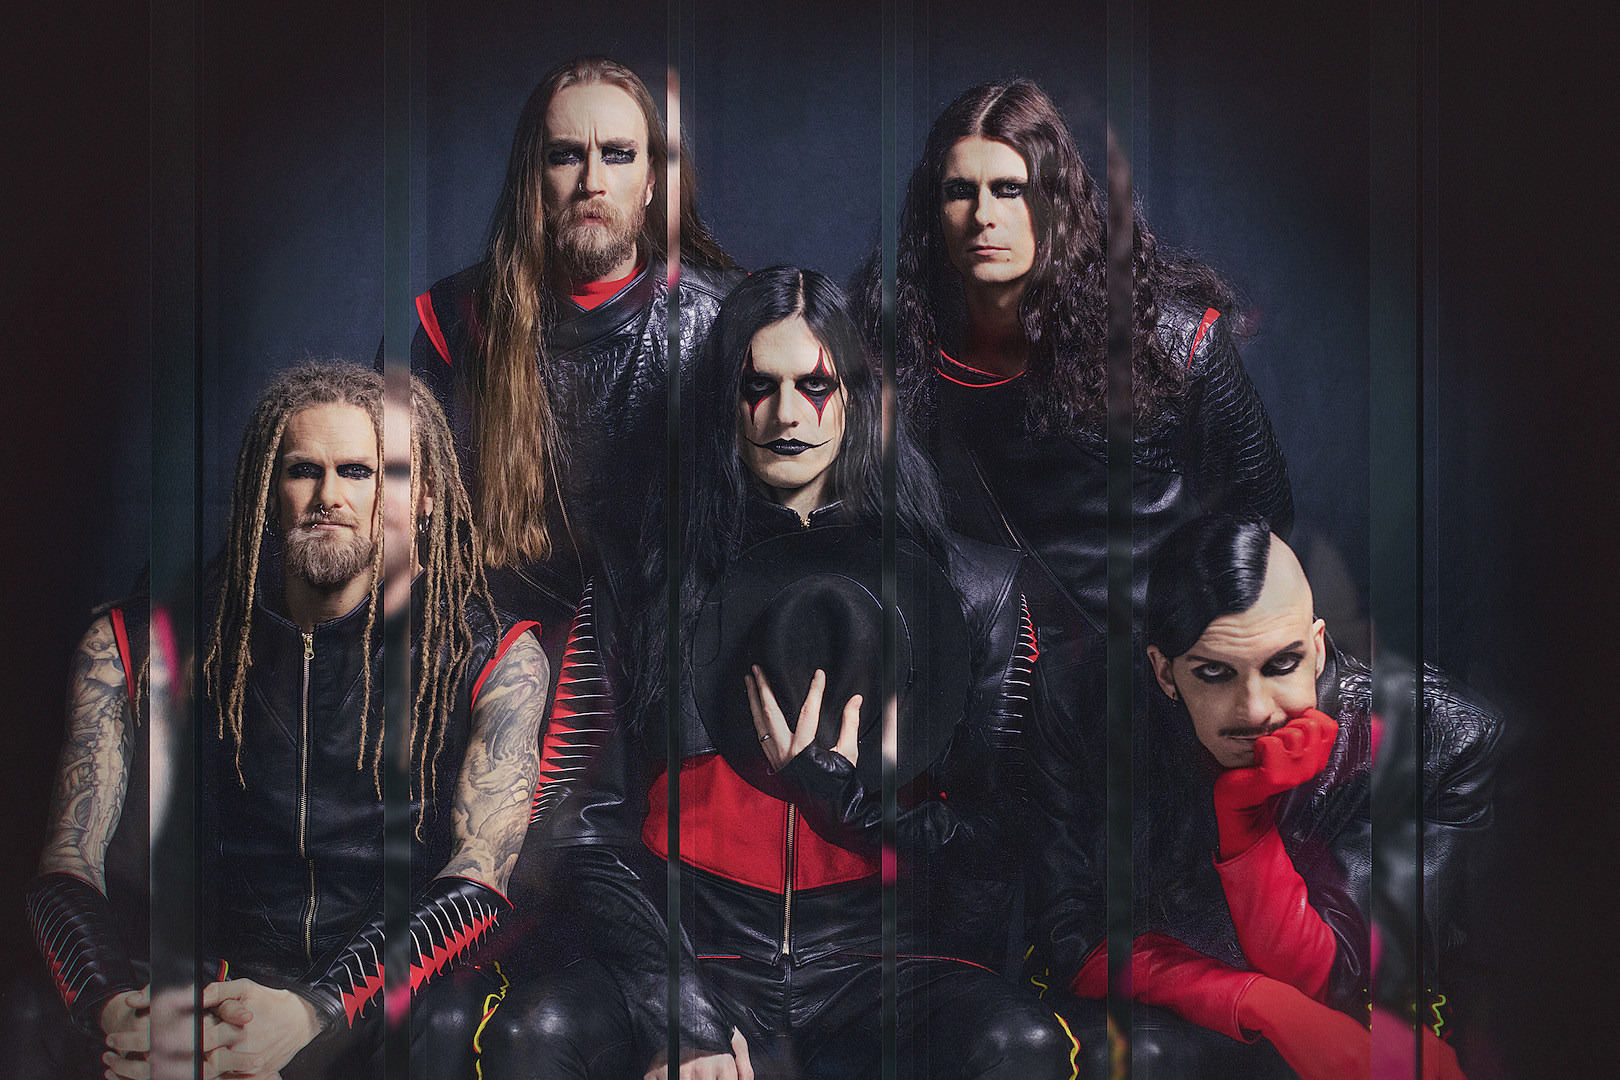 Interview with Avatar's Johannes Eckerström show art